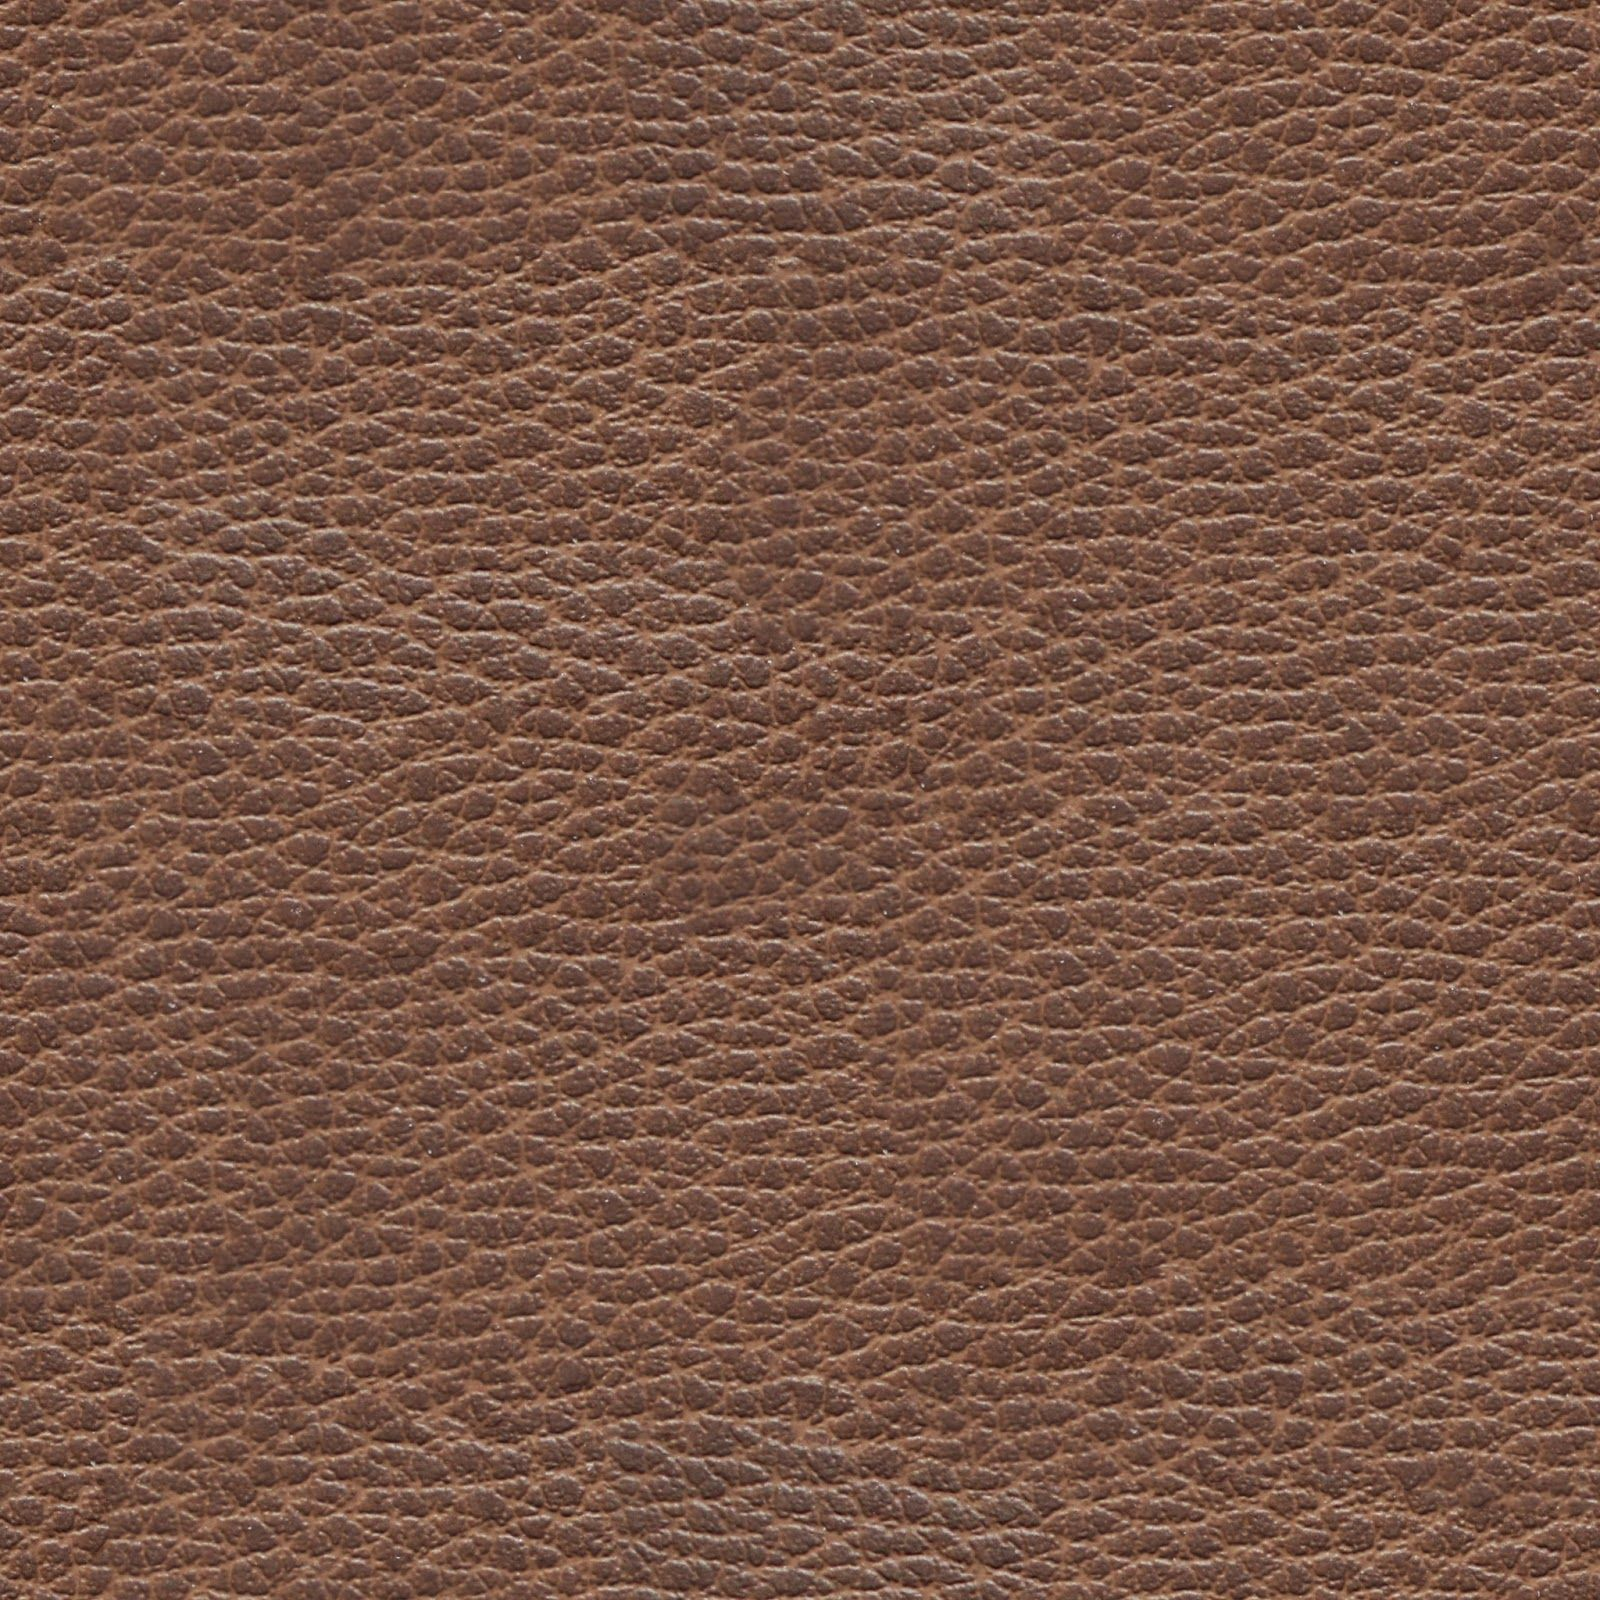 Brown bed sheet textures - Seamless Brown Leather Texture Maps Texturise